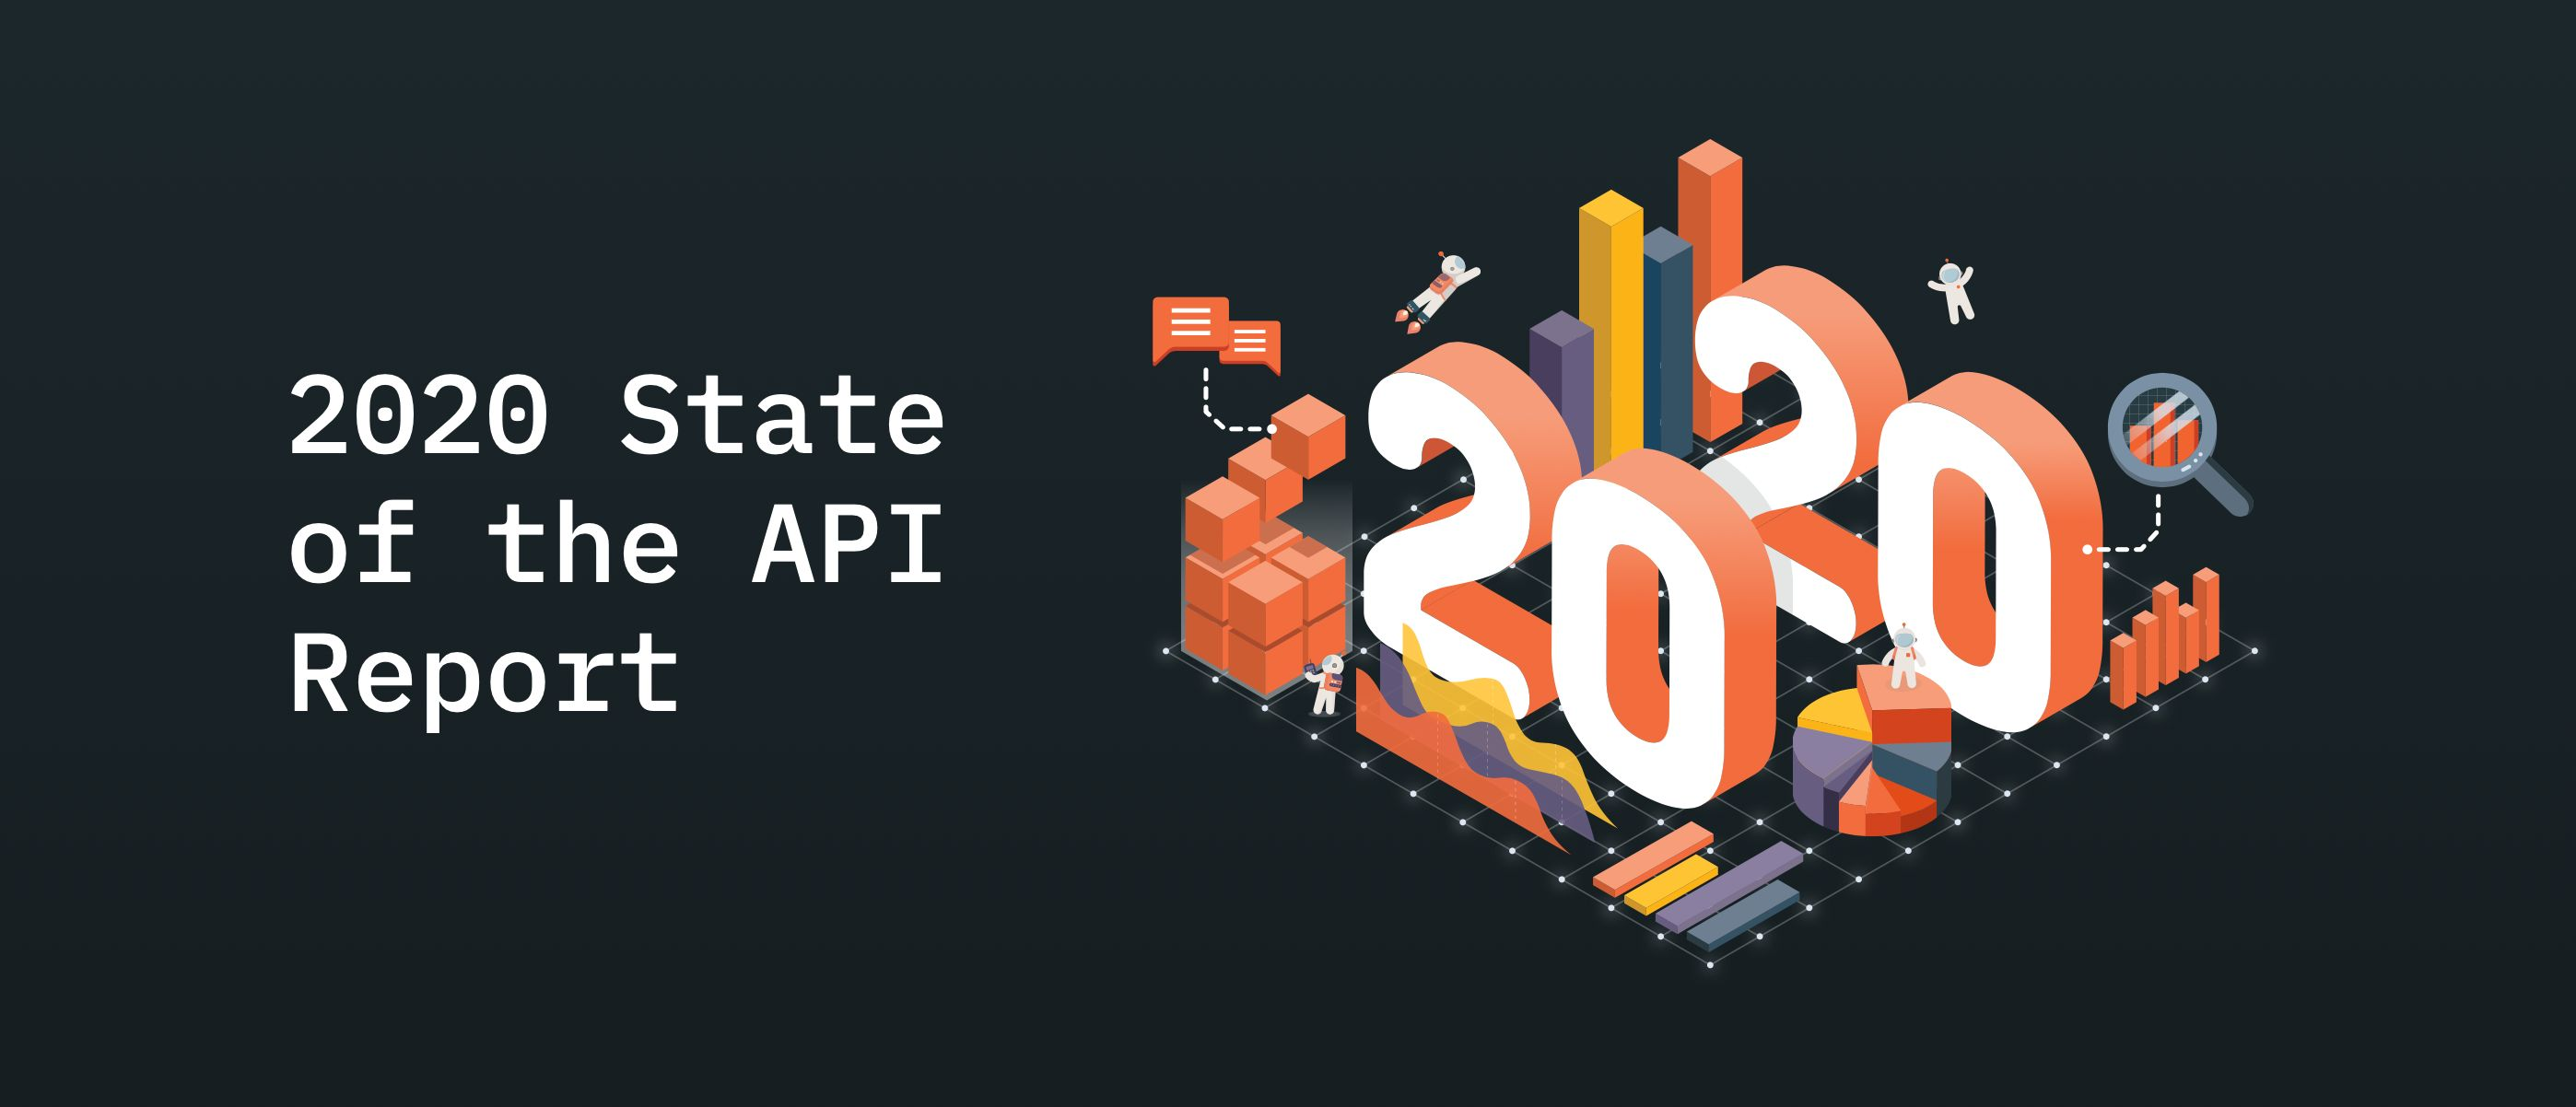 54% of Developers Cite Lack of Documentation as the Top Obstacle to Consuming APIs